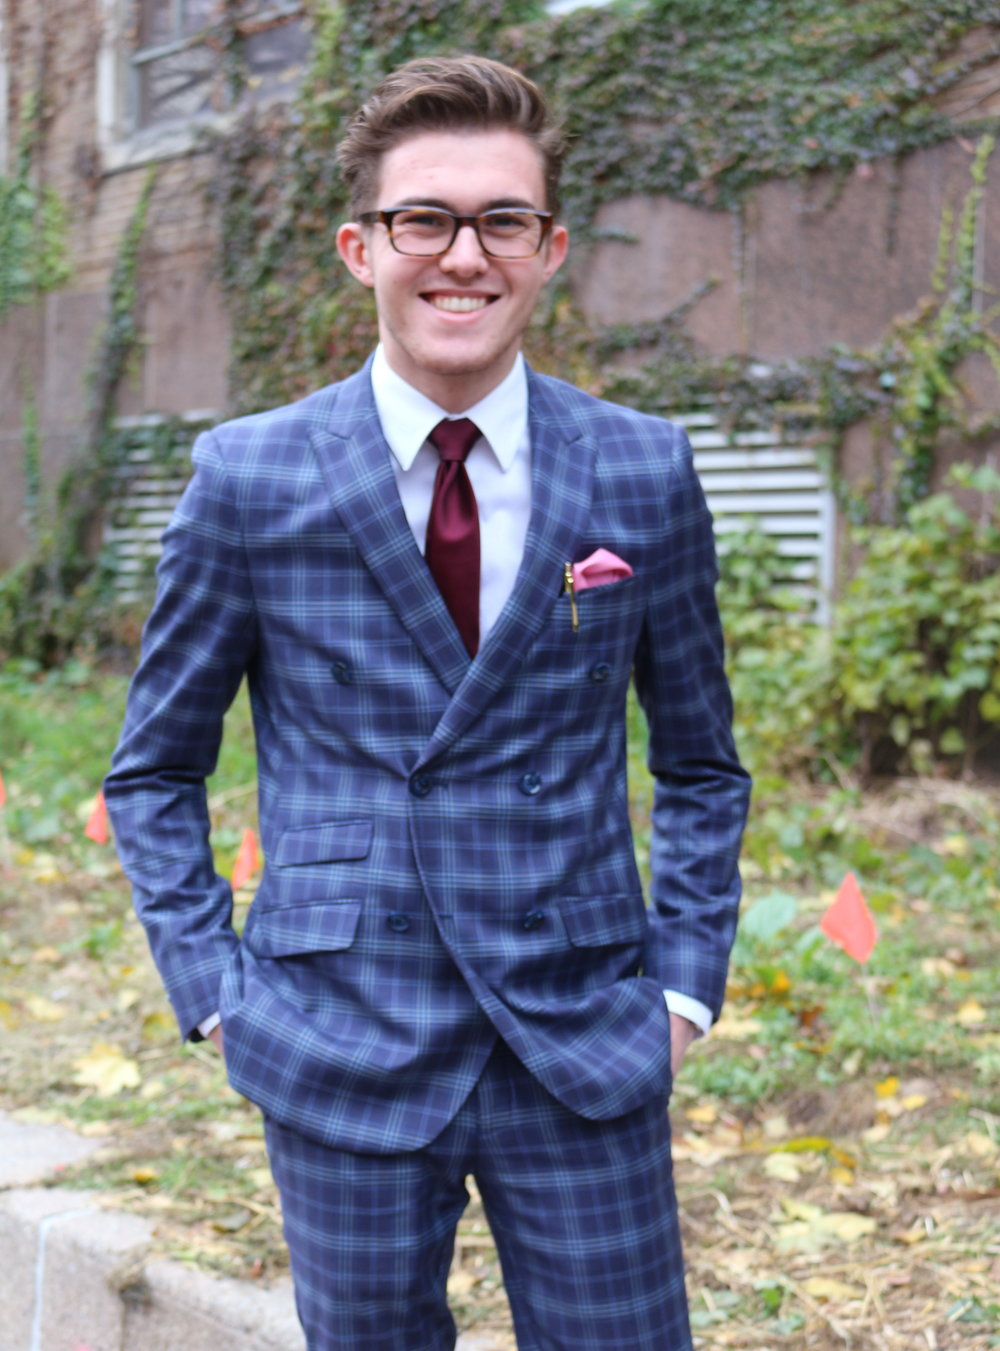 Nathaniel Doody, first-year fashion design student at Ryerson